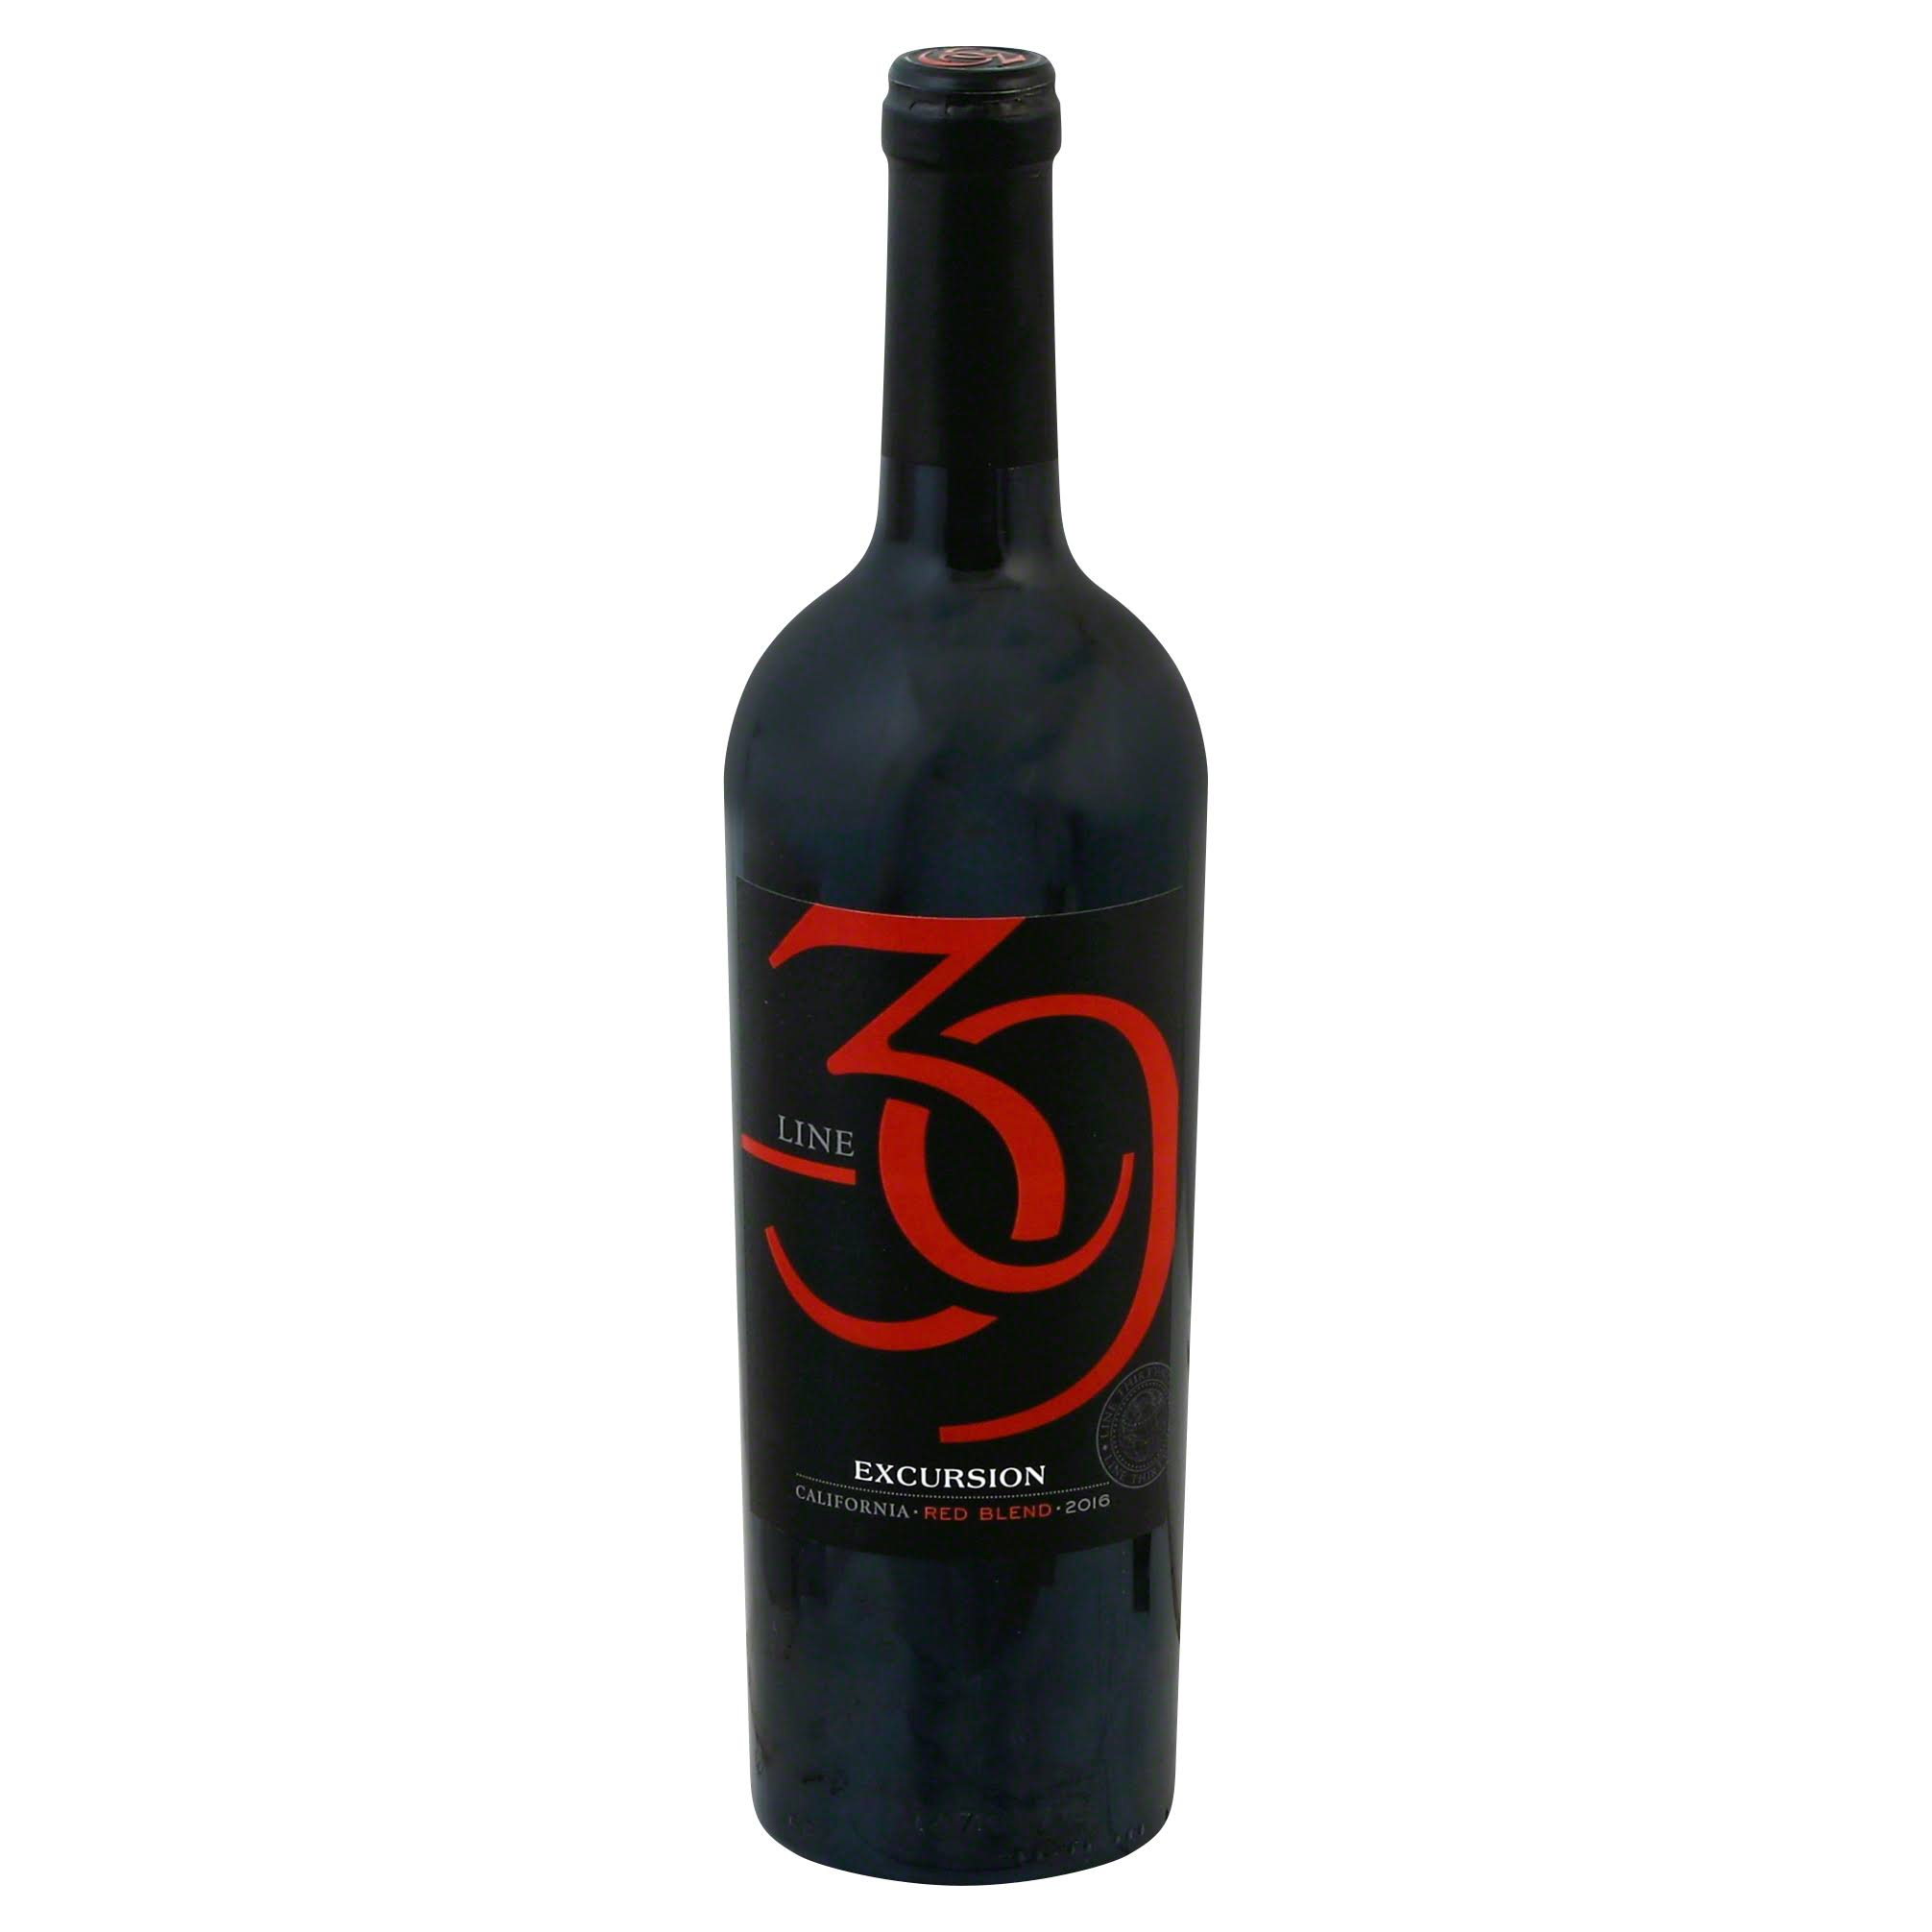 Line 39 Red Wine, Excursion, California, 2016 - 750 ml